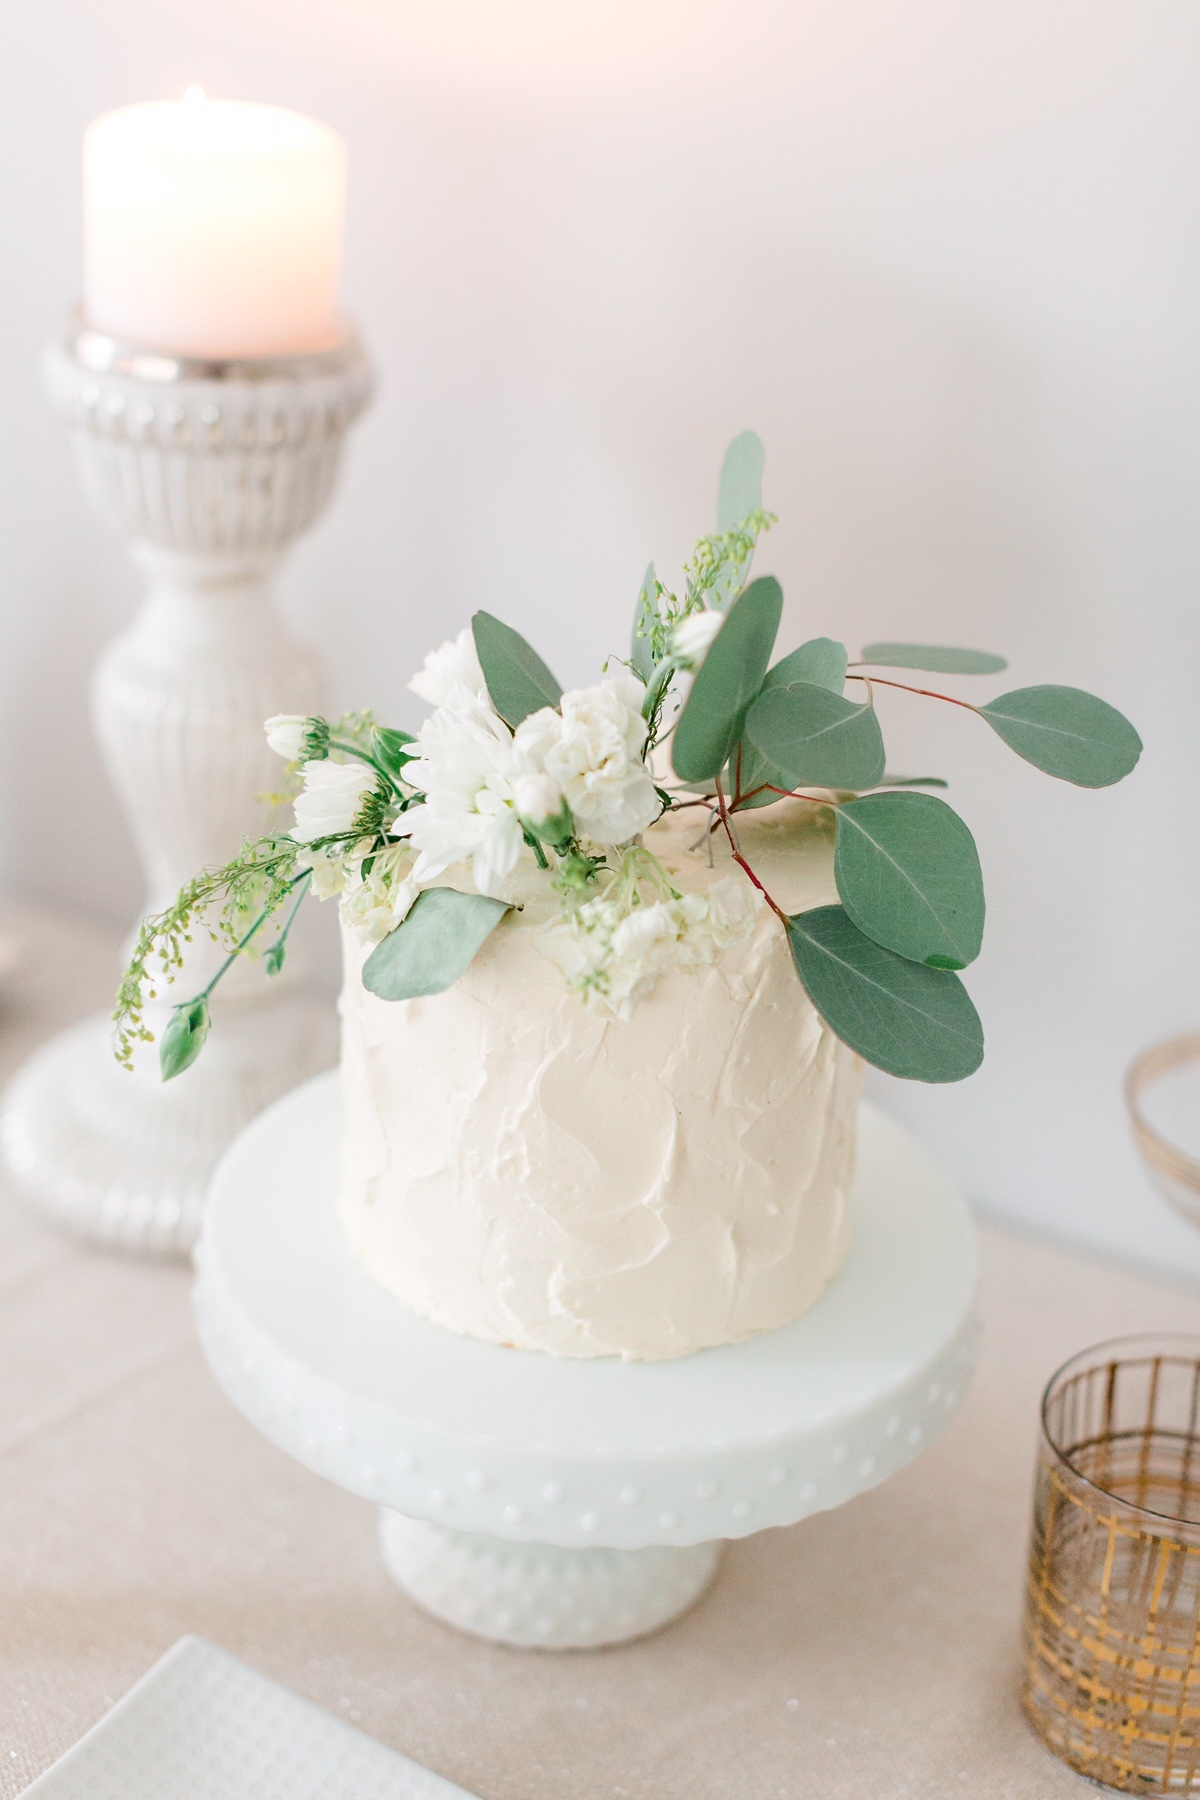 White fondant wedding cake with gum paste greenery